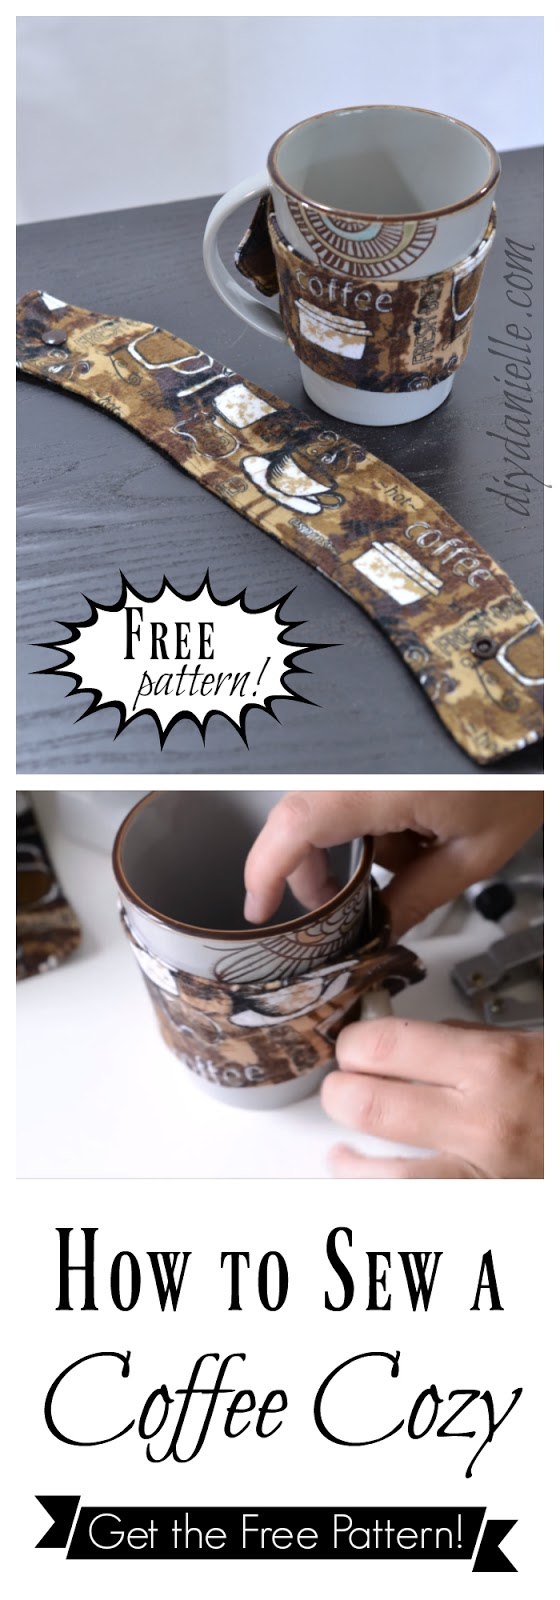 Free sewing pattern for a coffee cozy.